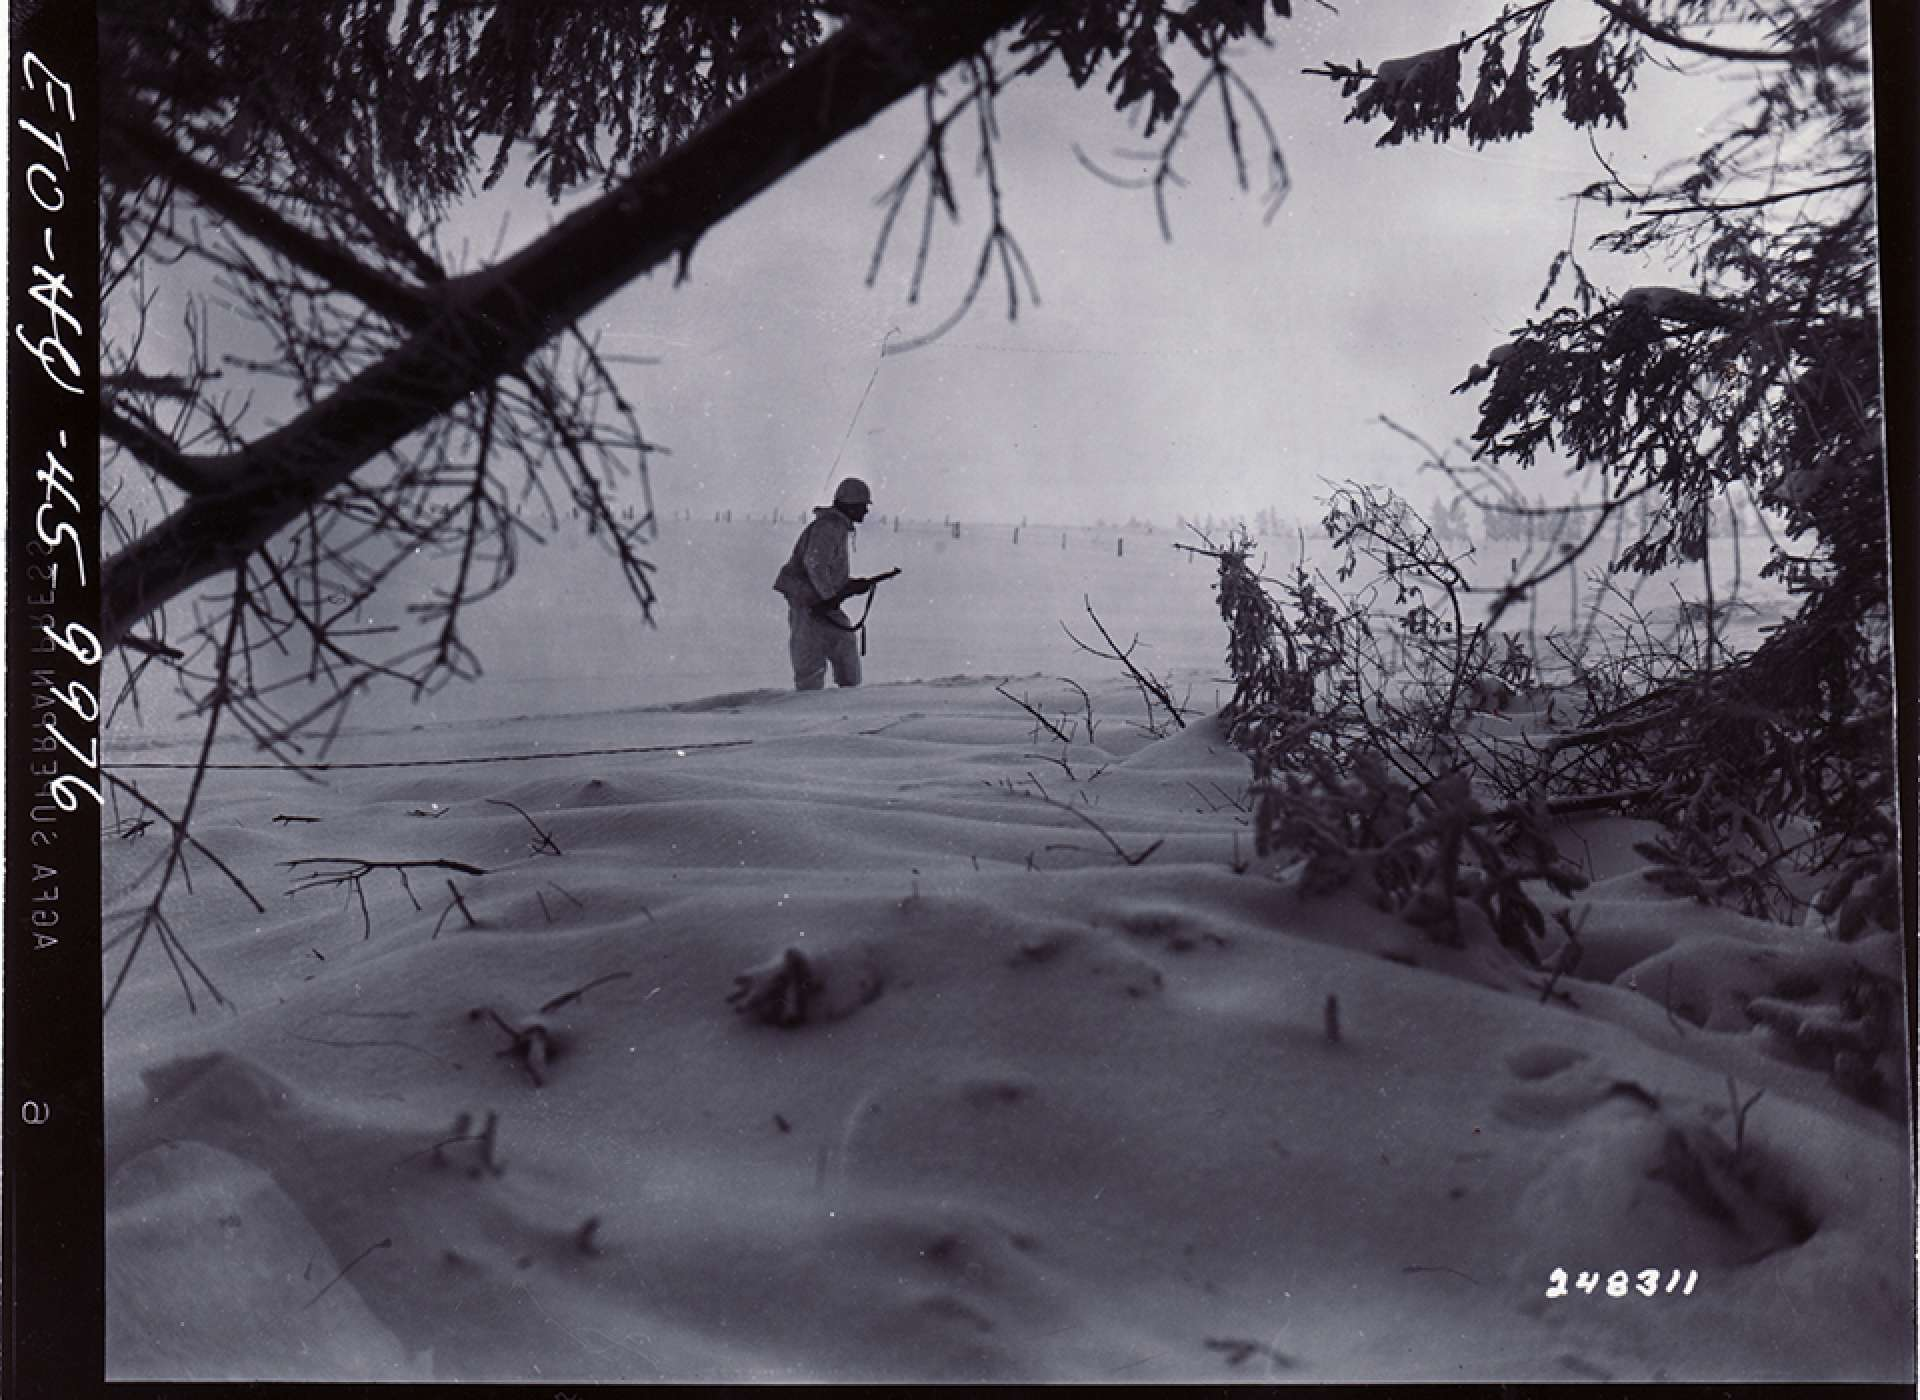 1st Infantry Division soldier on patrol near Bullingen, Belgium. The National WWII Museum Digital Collections.